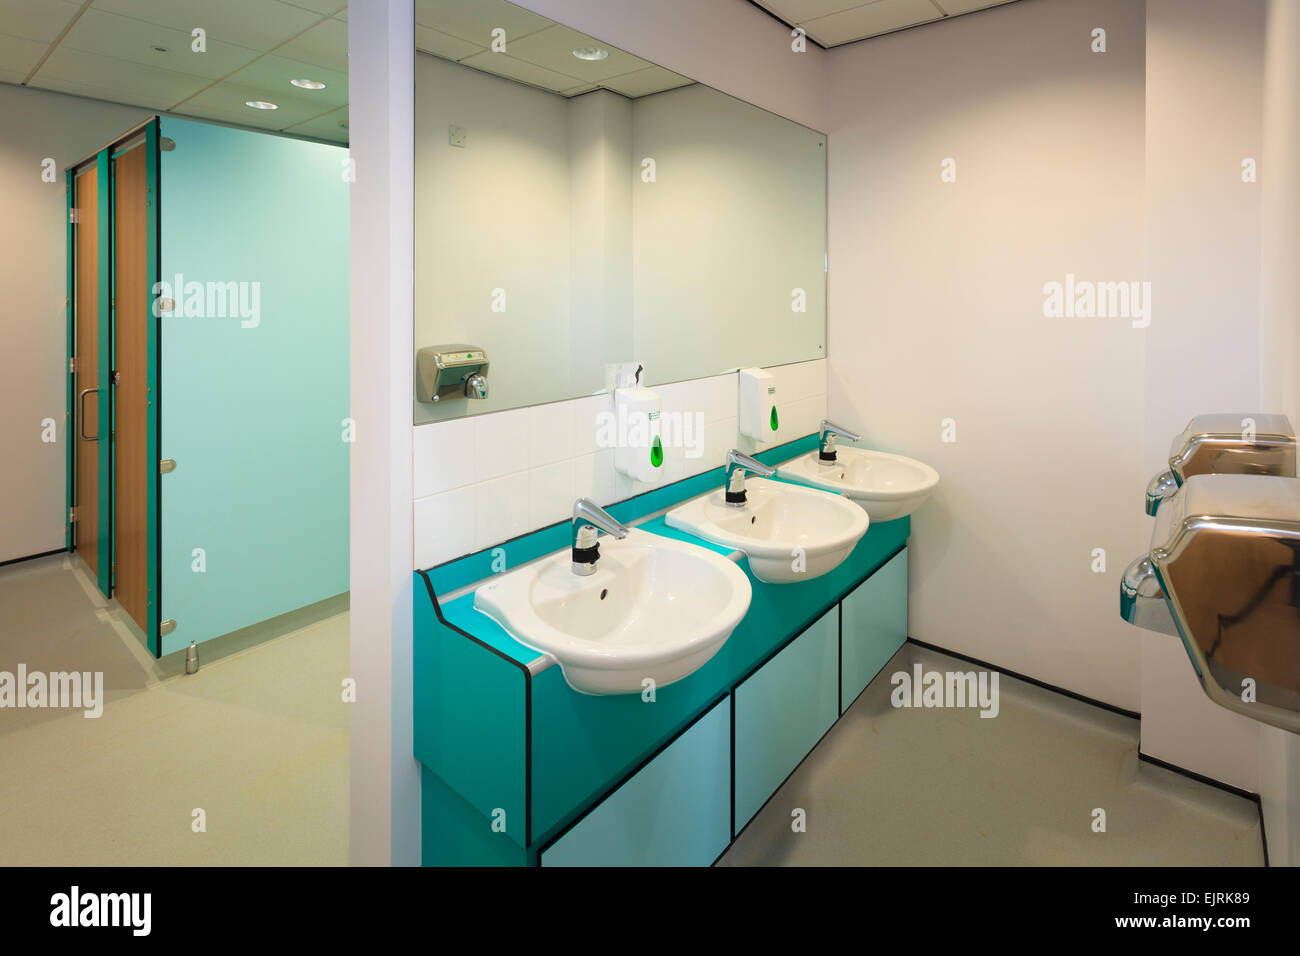 Stock Photo Wash Basins Hand Dryers And Toilet Cubicals Of Modern Restroom